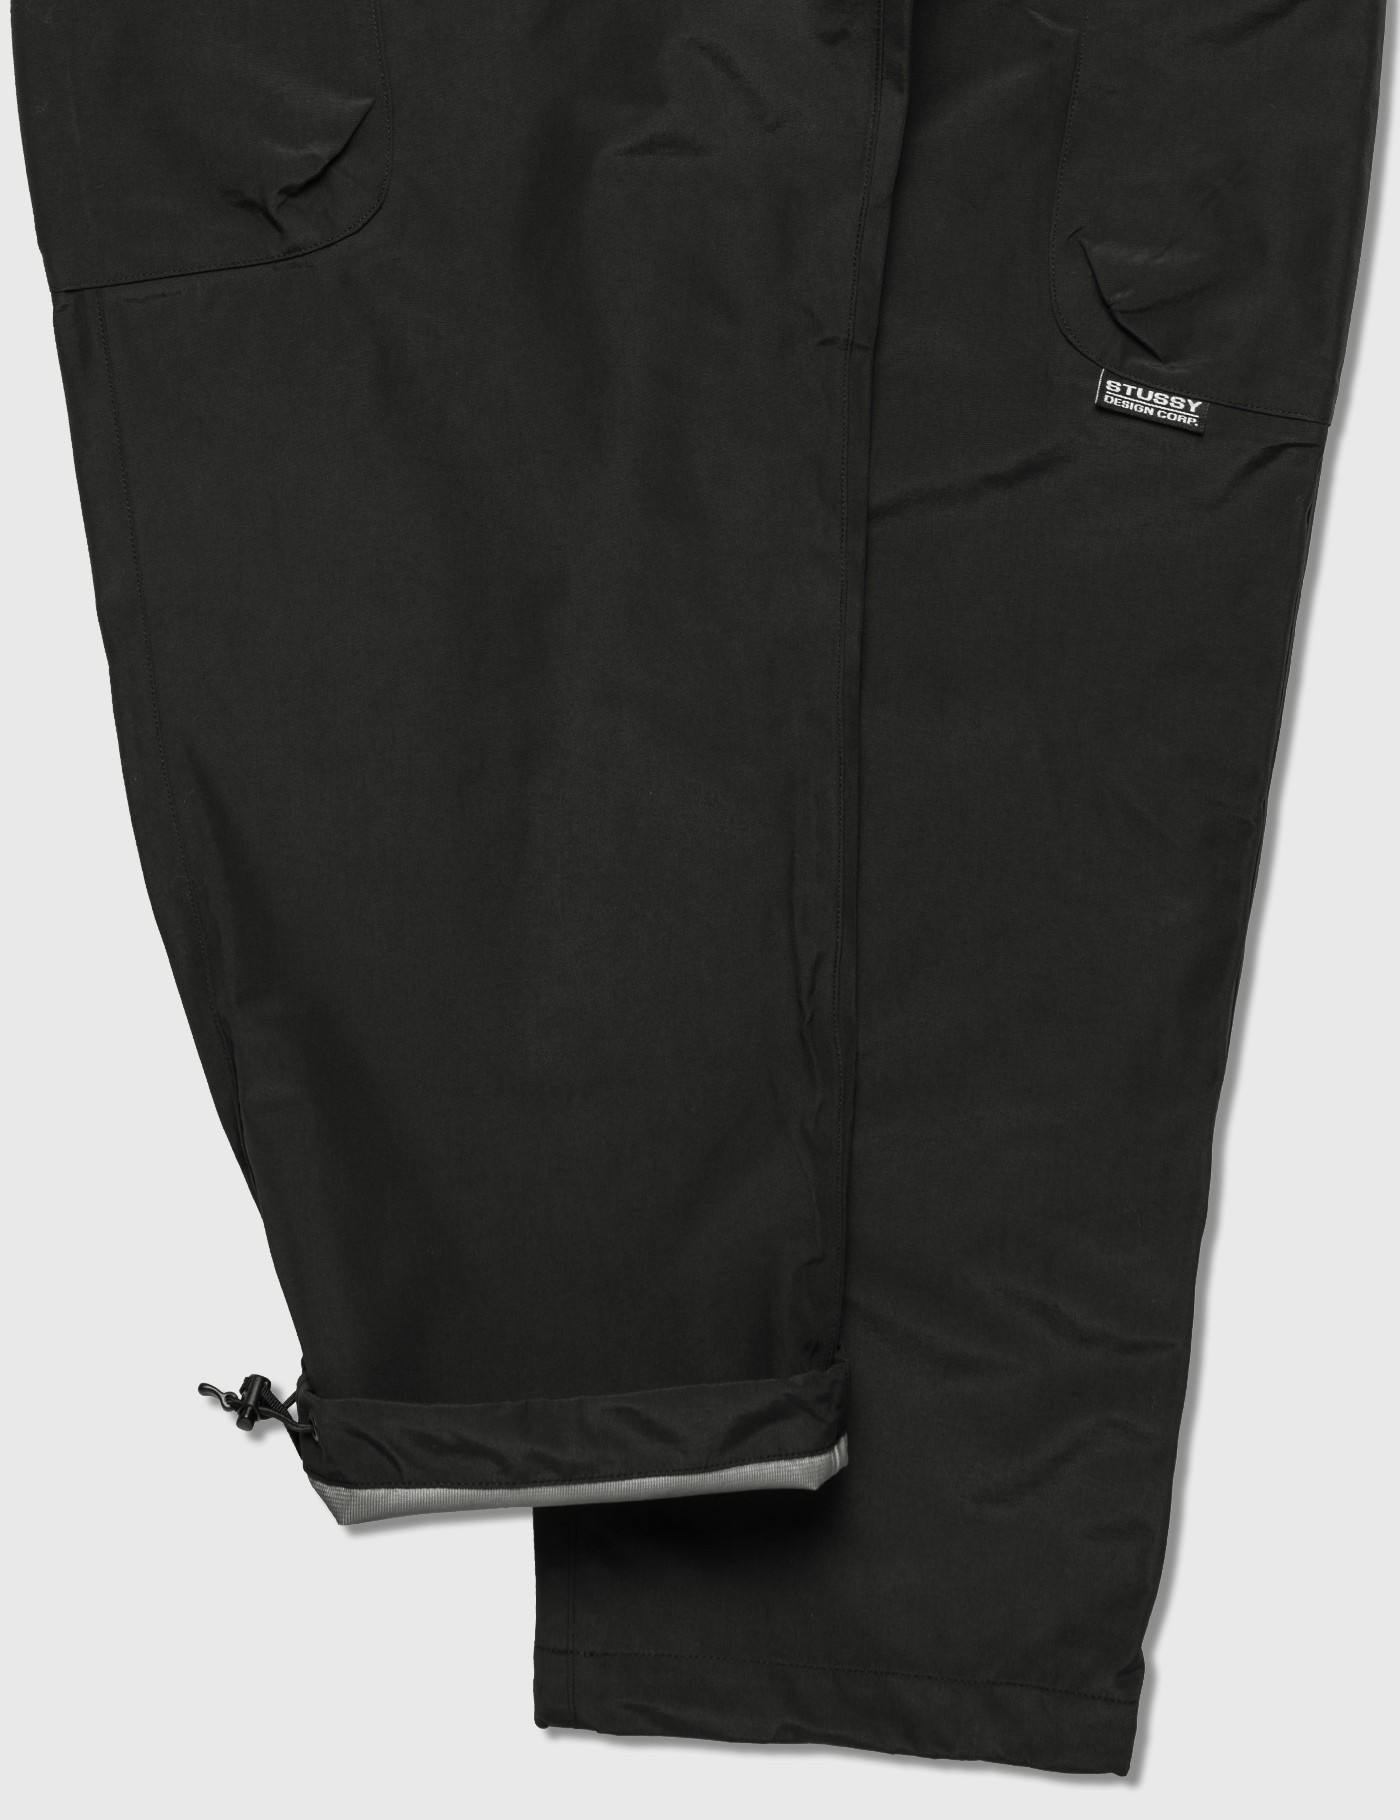 Stussy Solid Taped Seam Cargo Pants